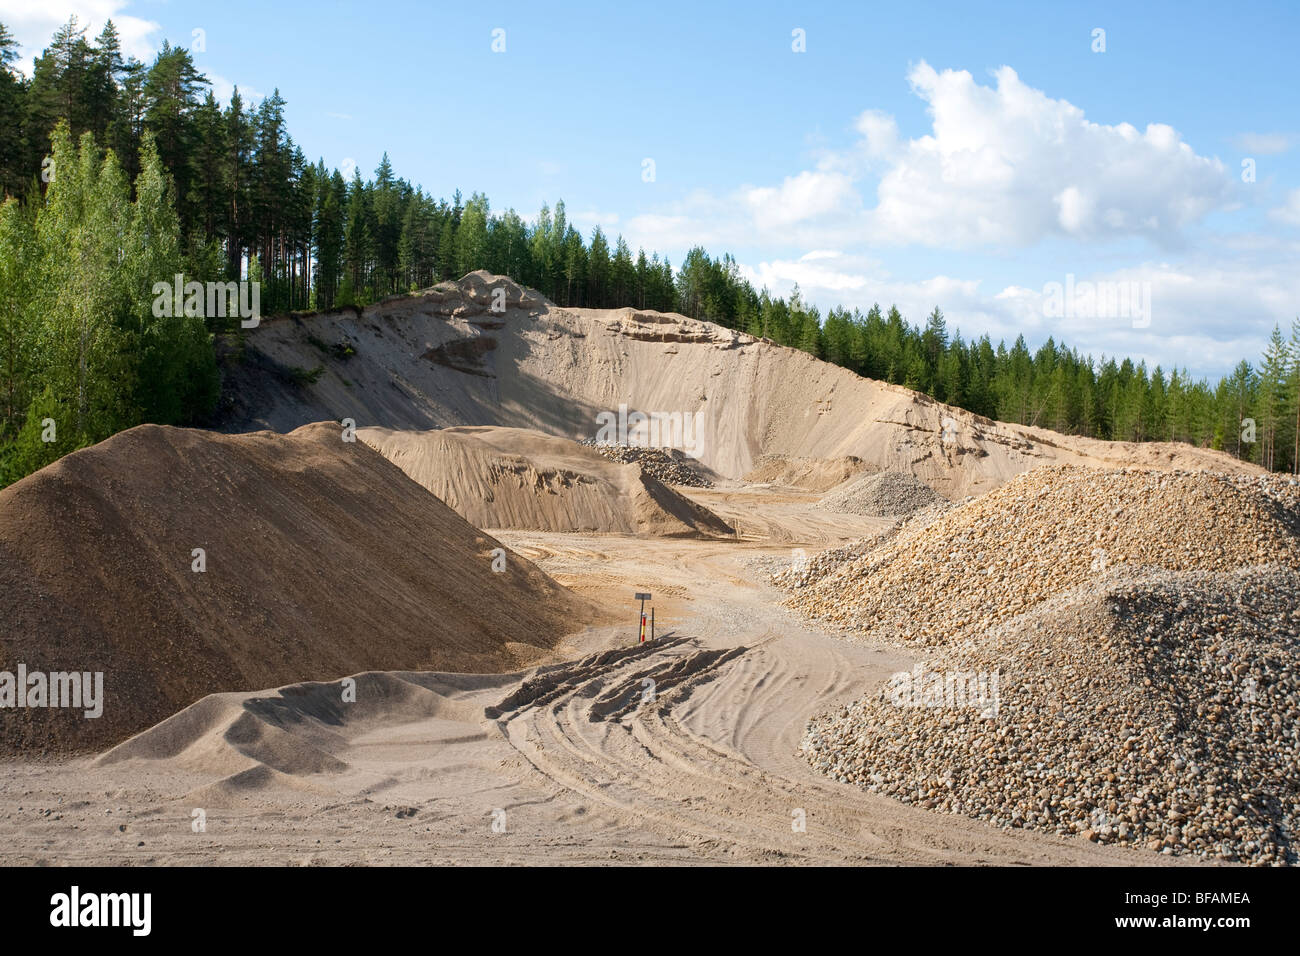 Gravel pit at an ice-age esker , Finland - Stock Image